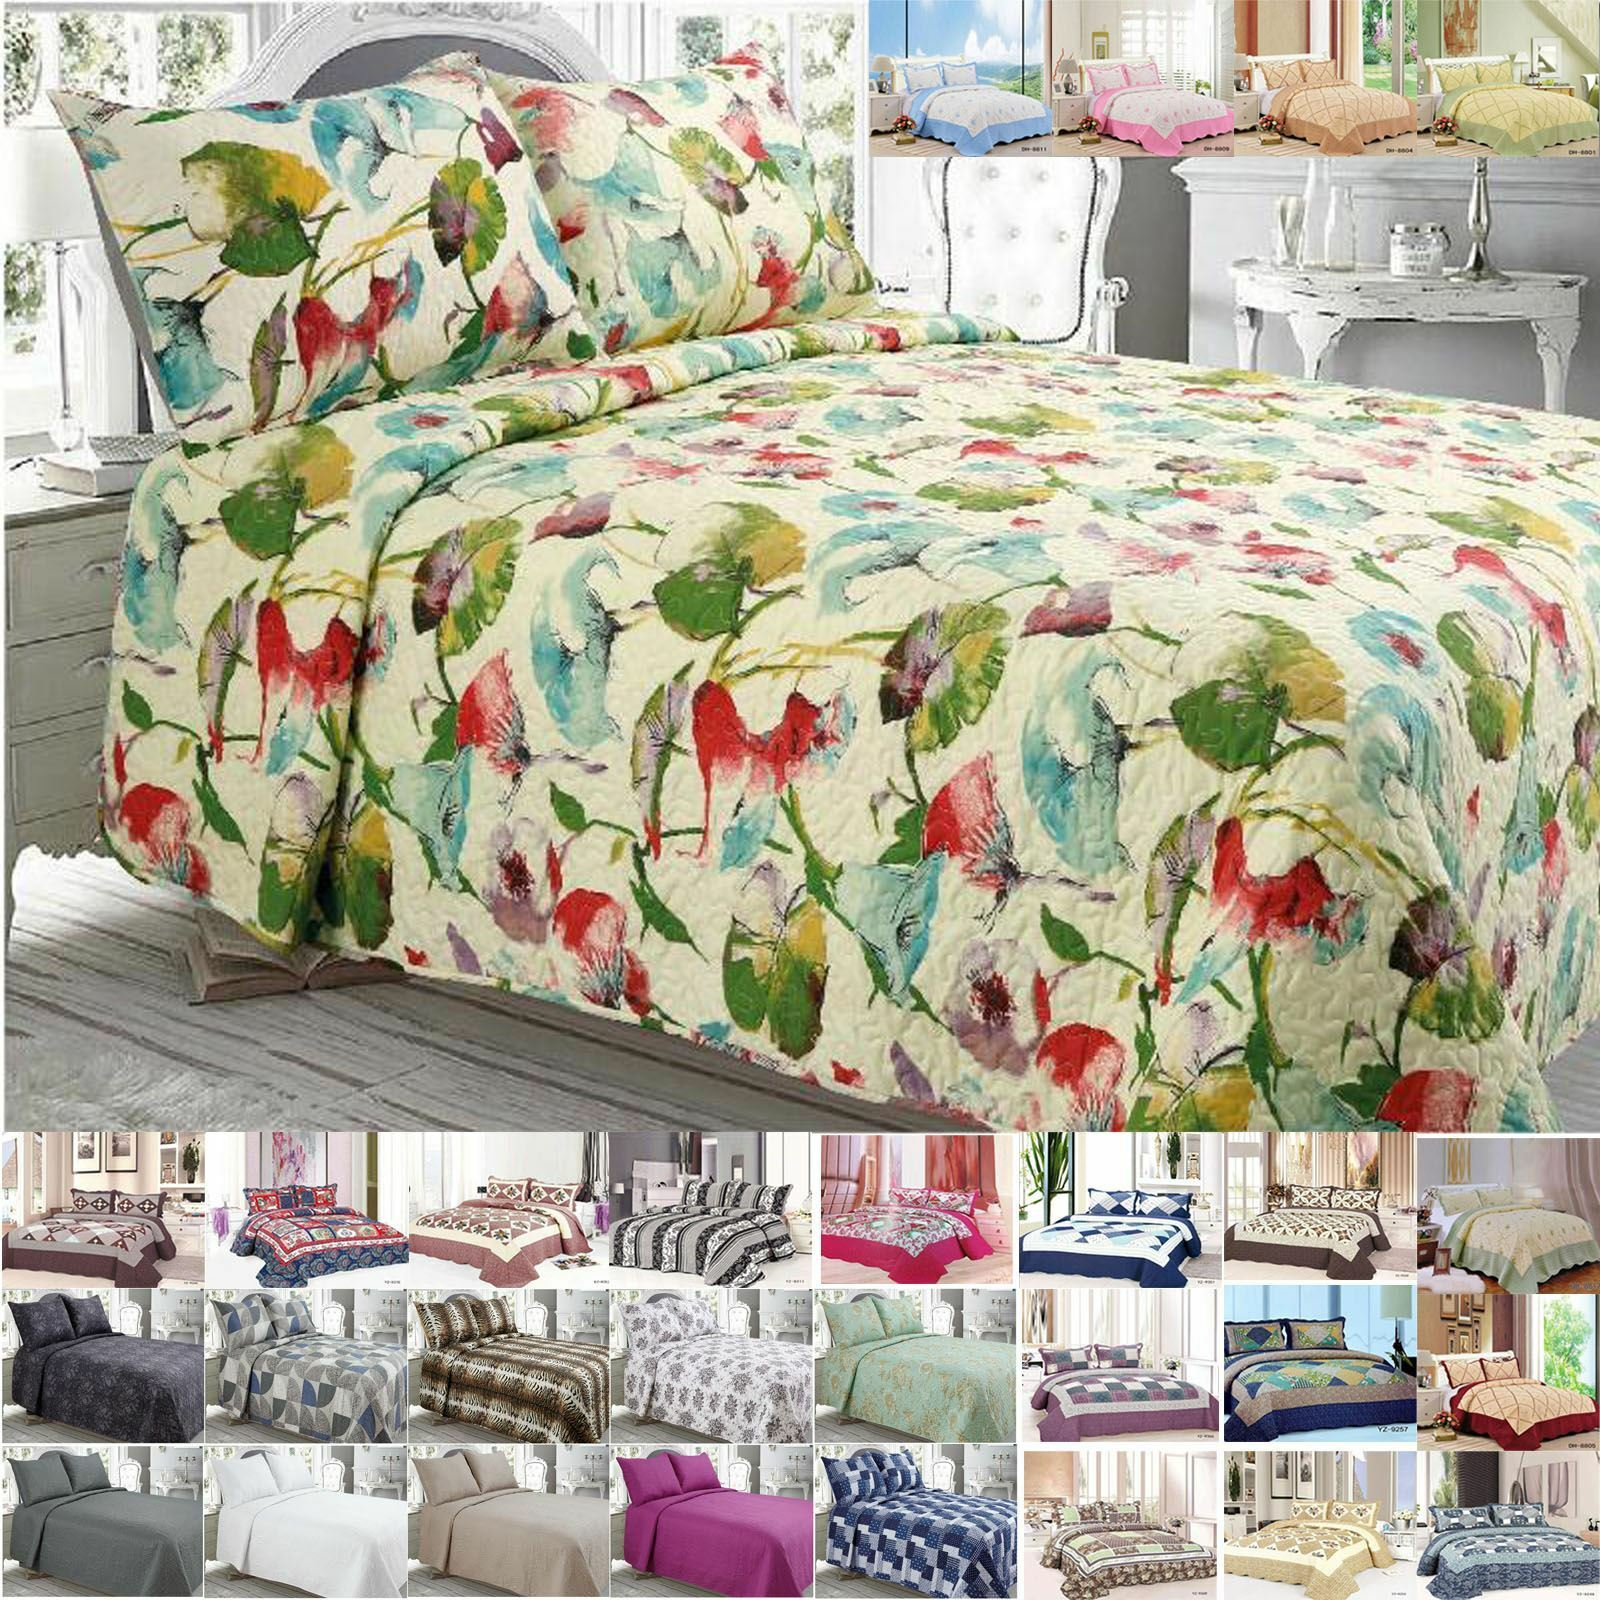 NEW BEDSPREAD PILLOW COVER FLORAL THROW JACQUARD QUILTED PATCHWORK SET HONEYCOMB